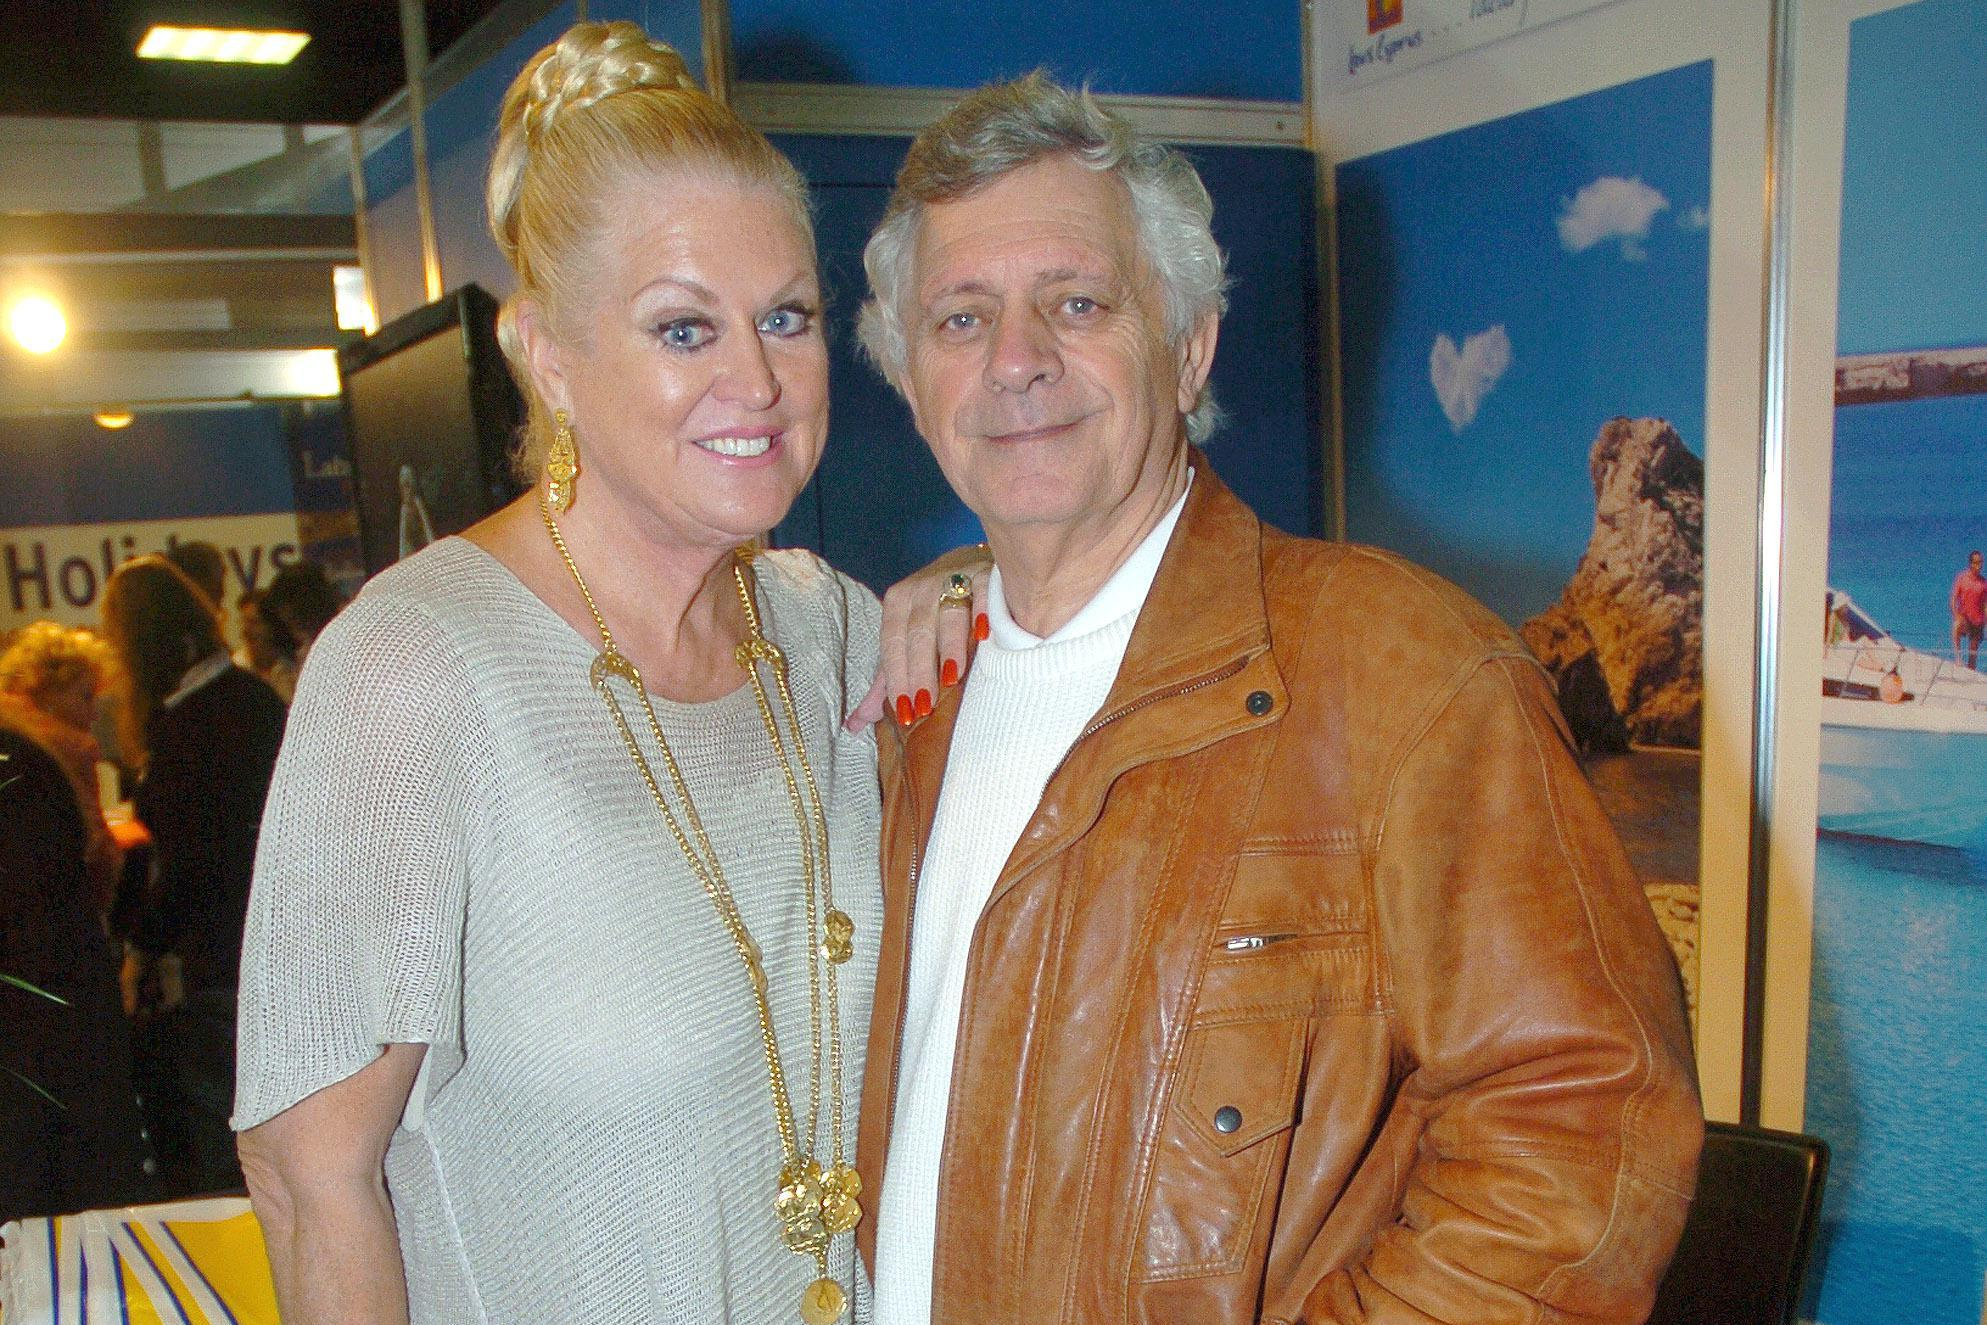 Kim Woodburn s husband insists she isn t a bully